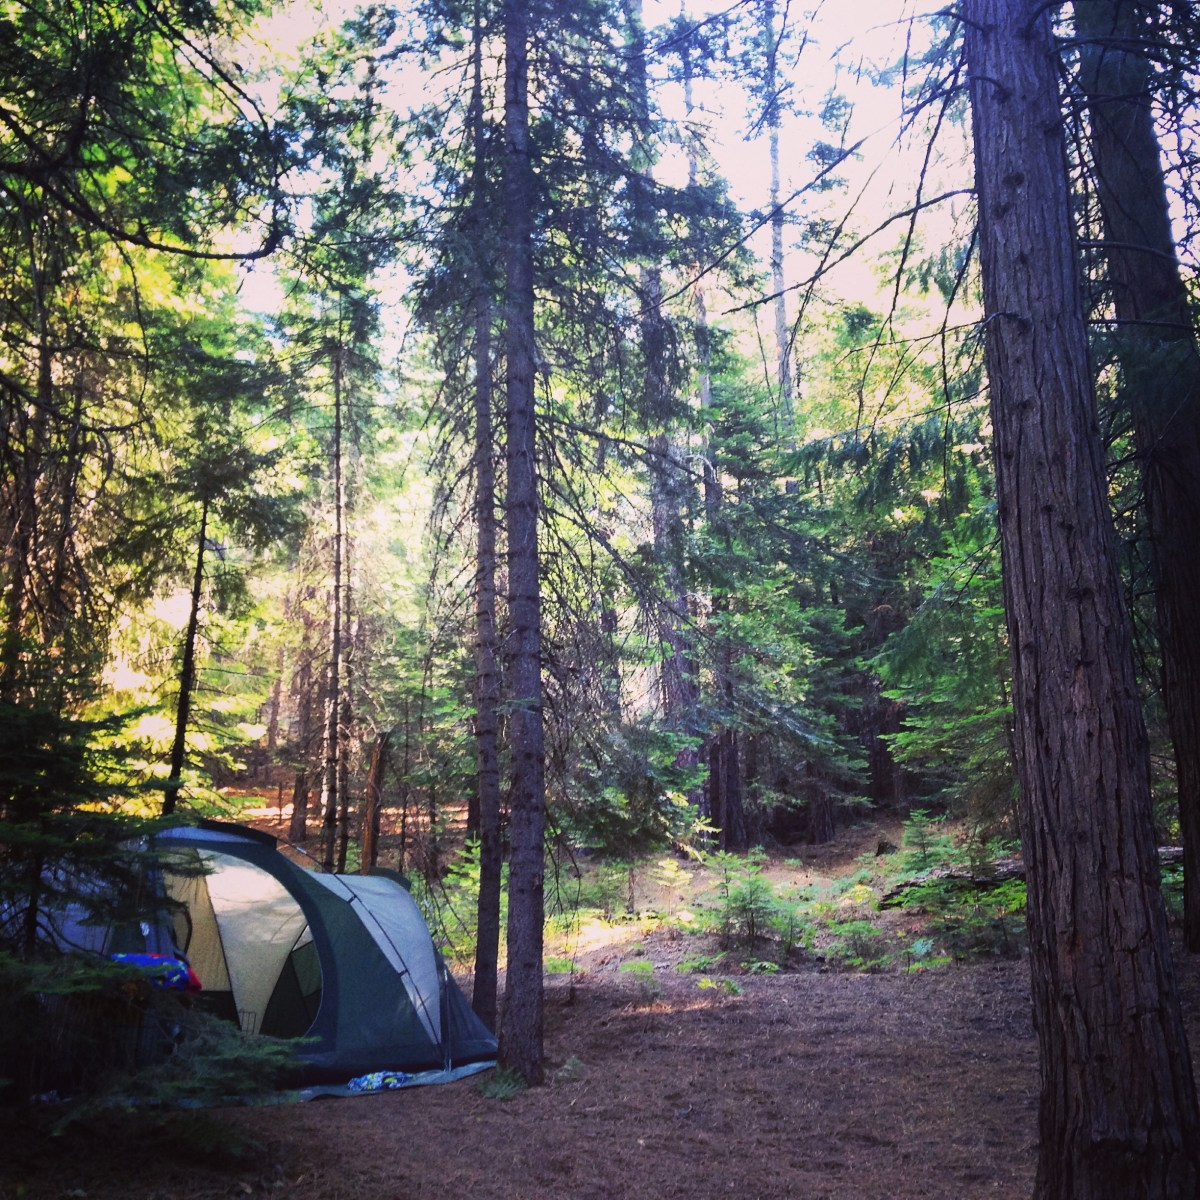 Camping and Exploring PiPi Campground